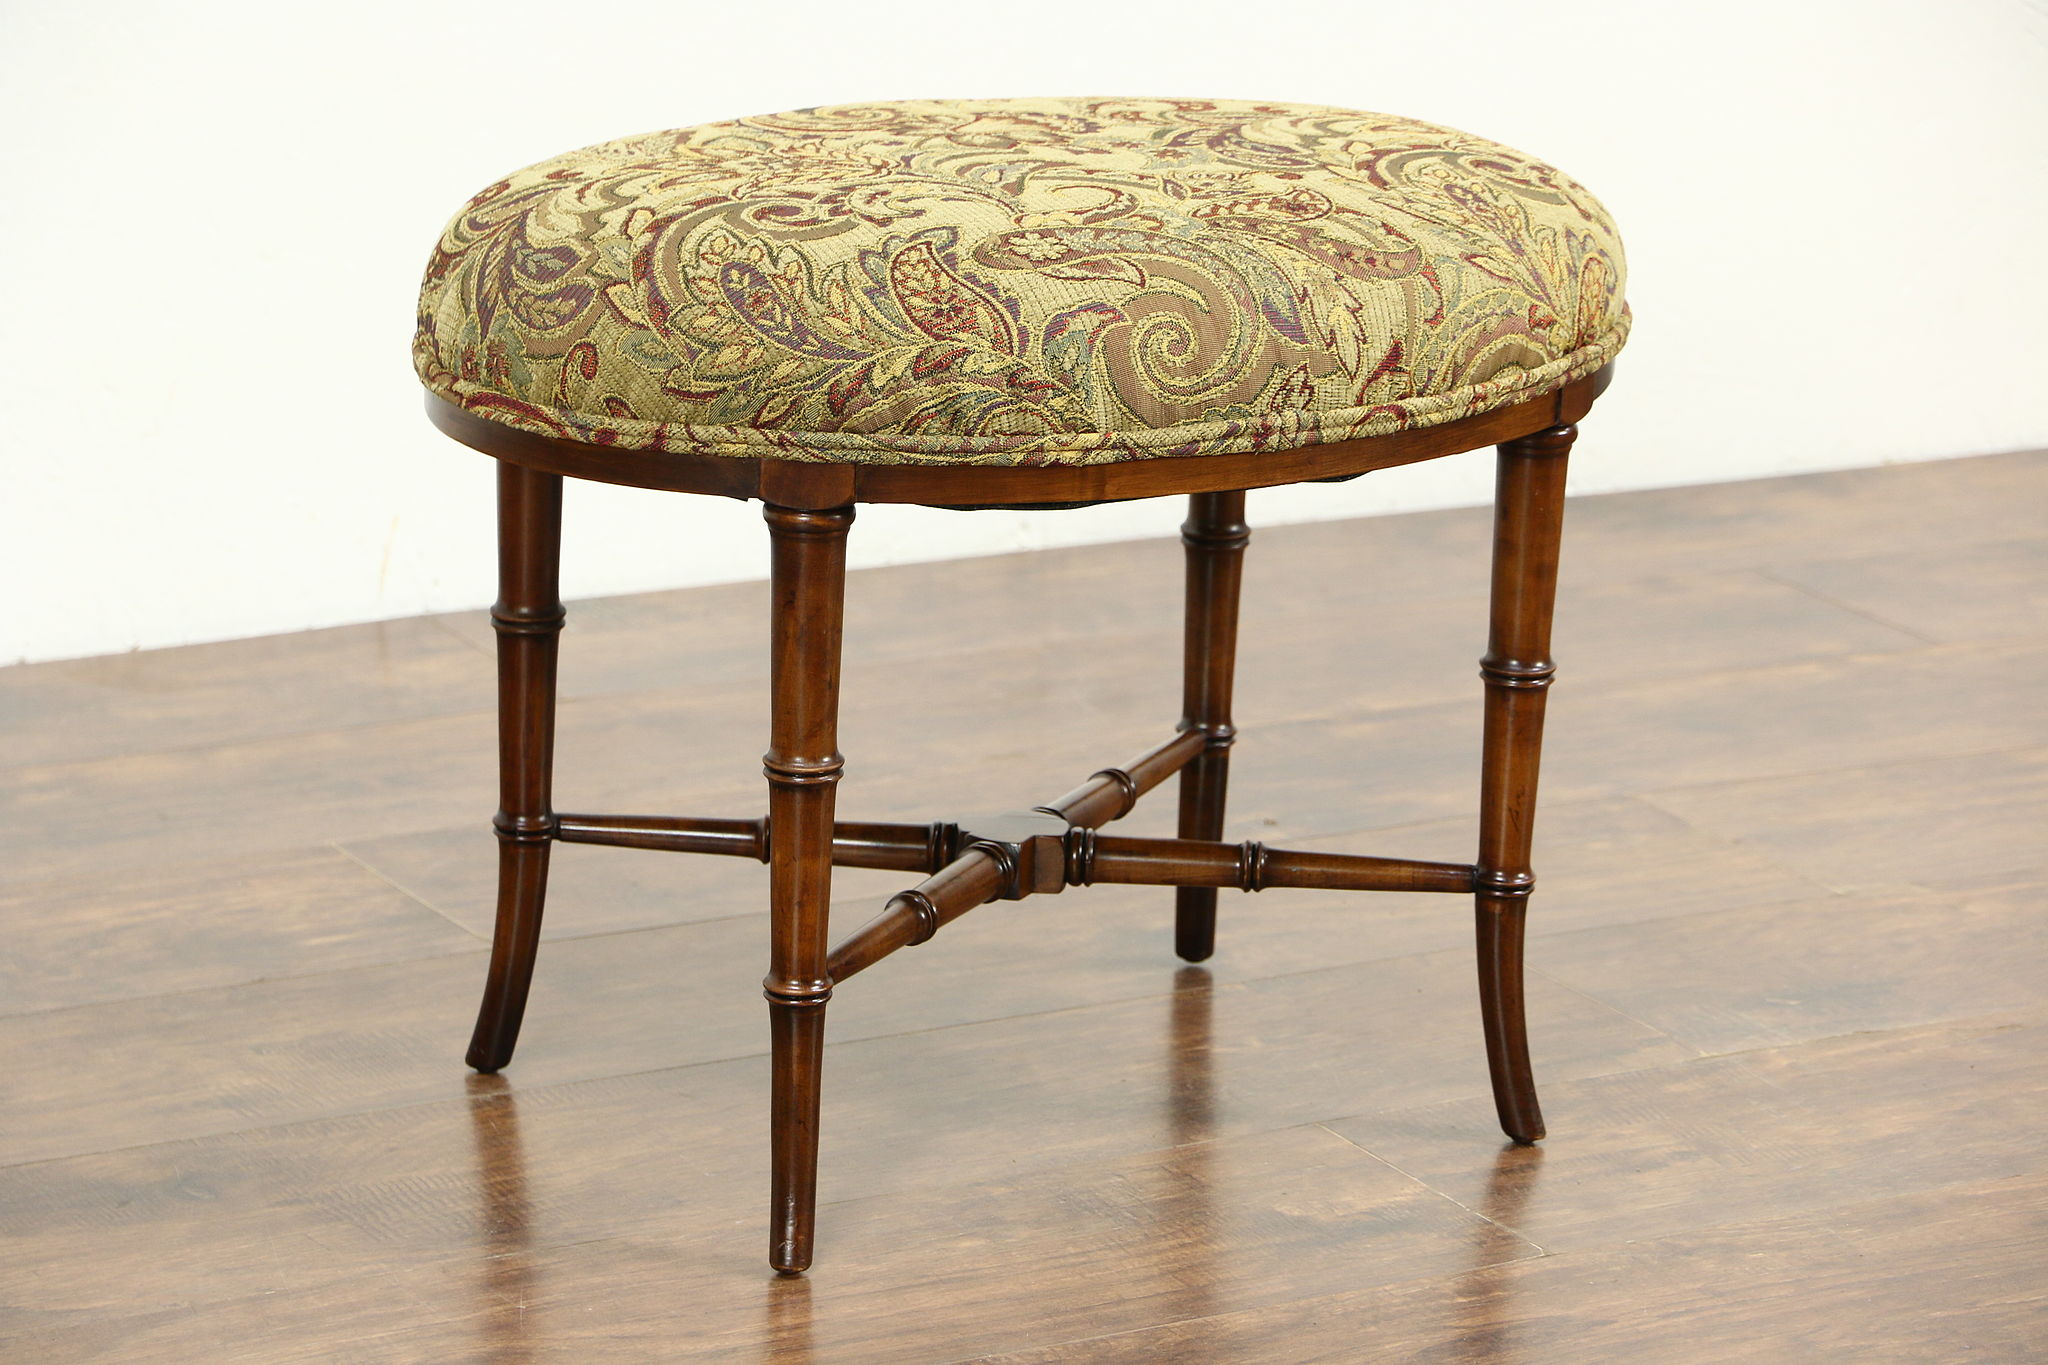 Oval Vintage Fruitwood Bamboo Stool or Bench, New Upholstery ...